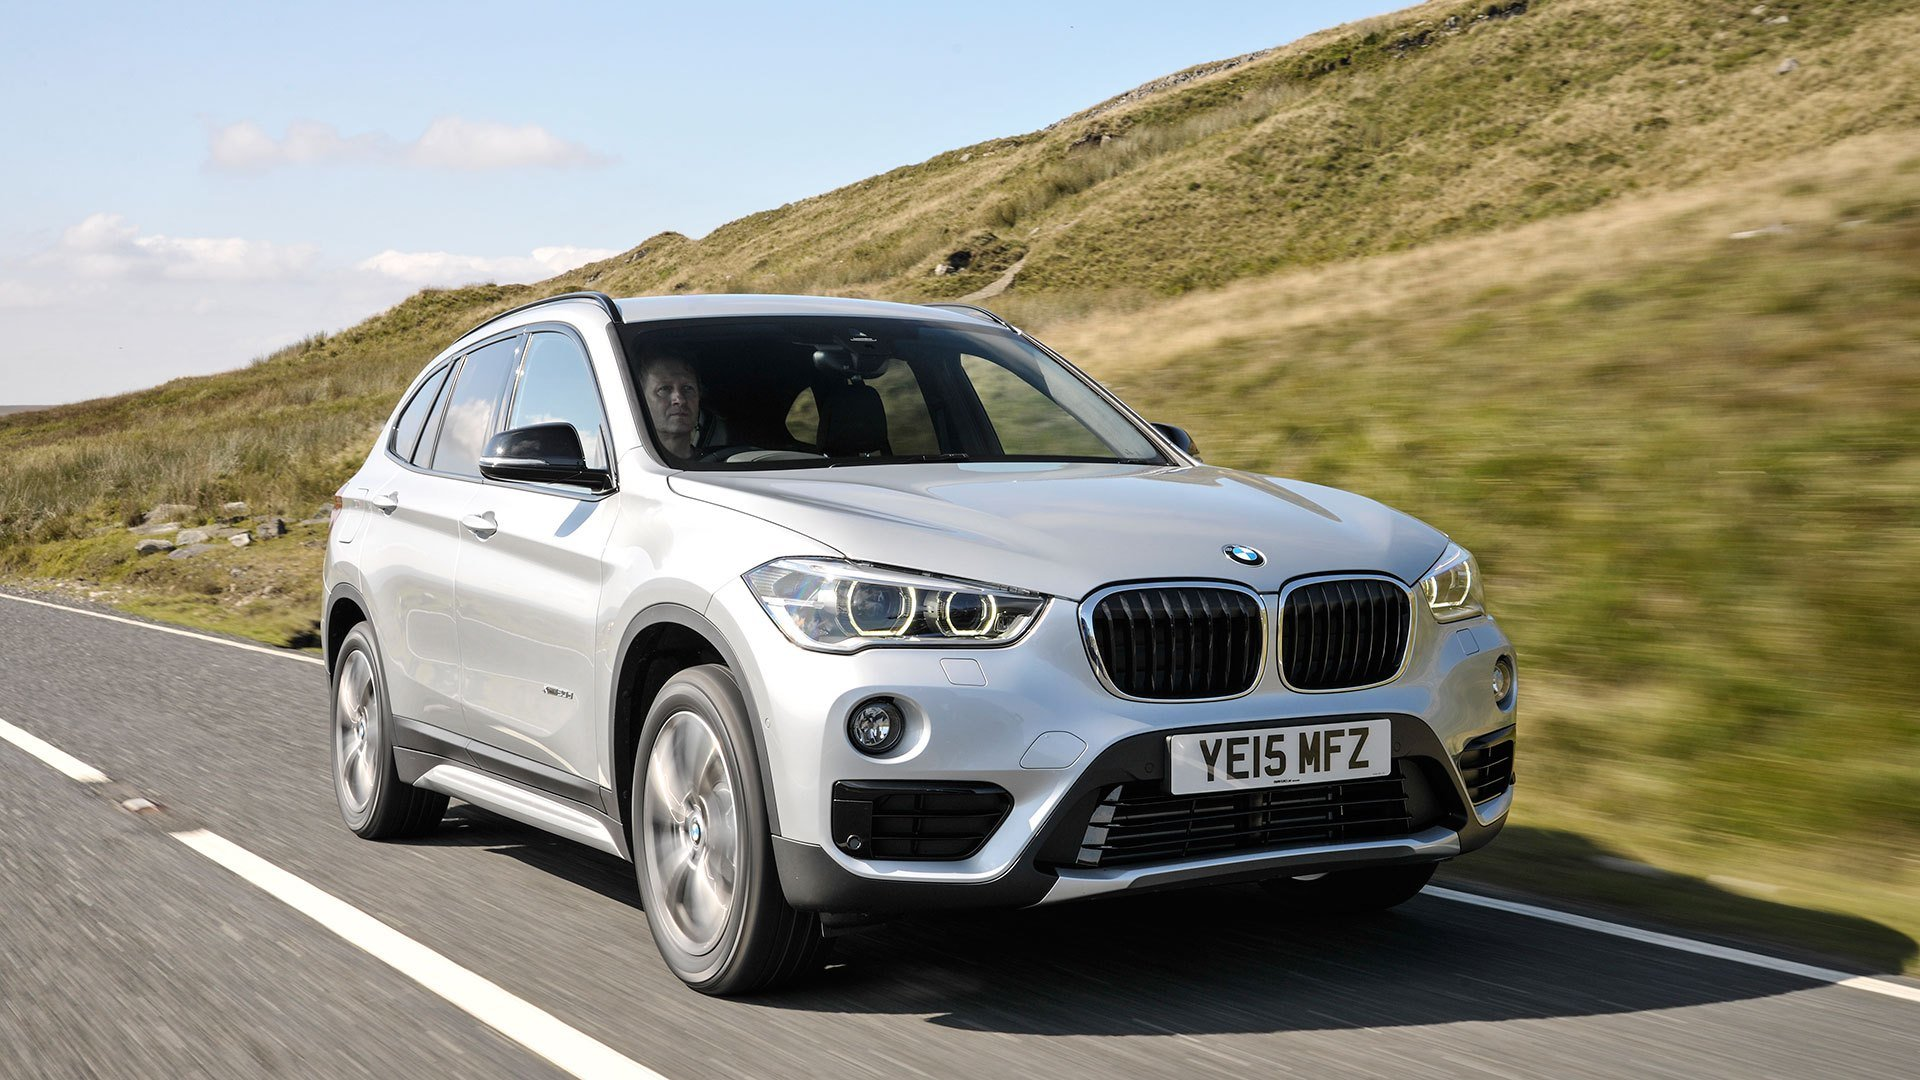 Latest Bmw X1 Suv 2016 Review Auto Trader Uk Free Download